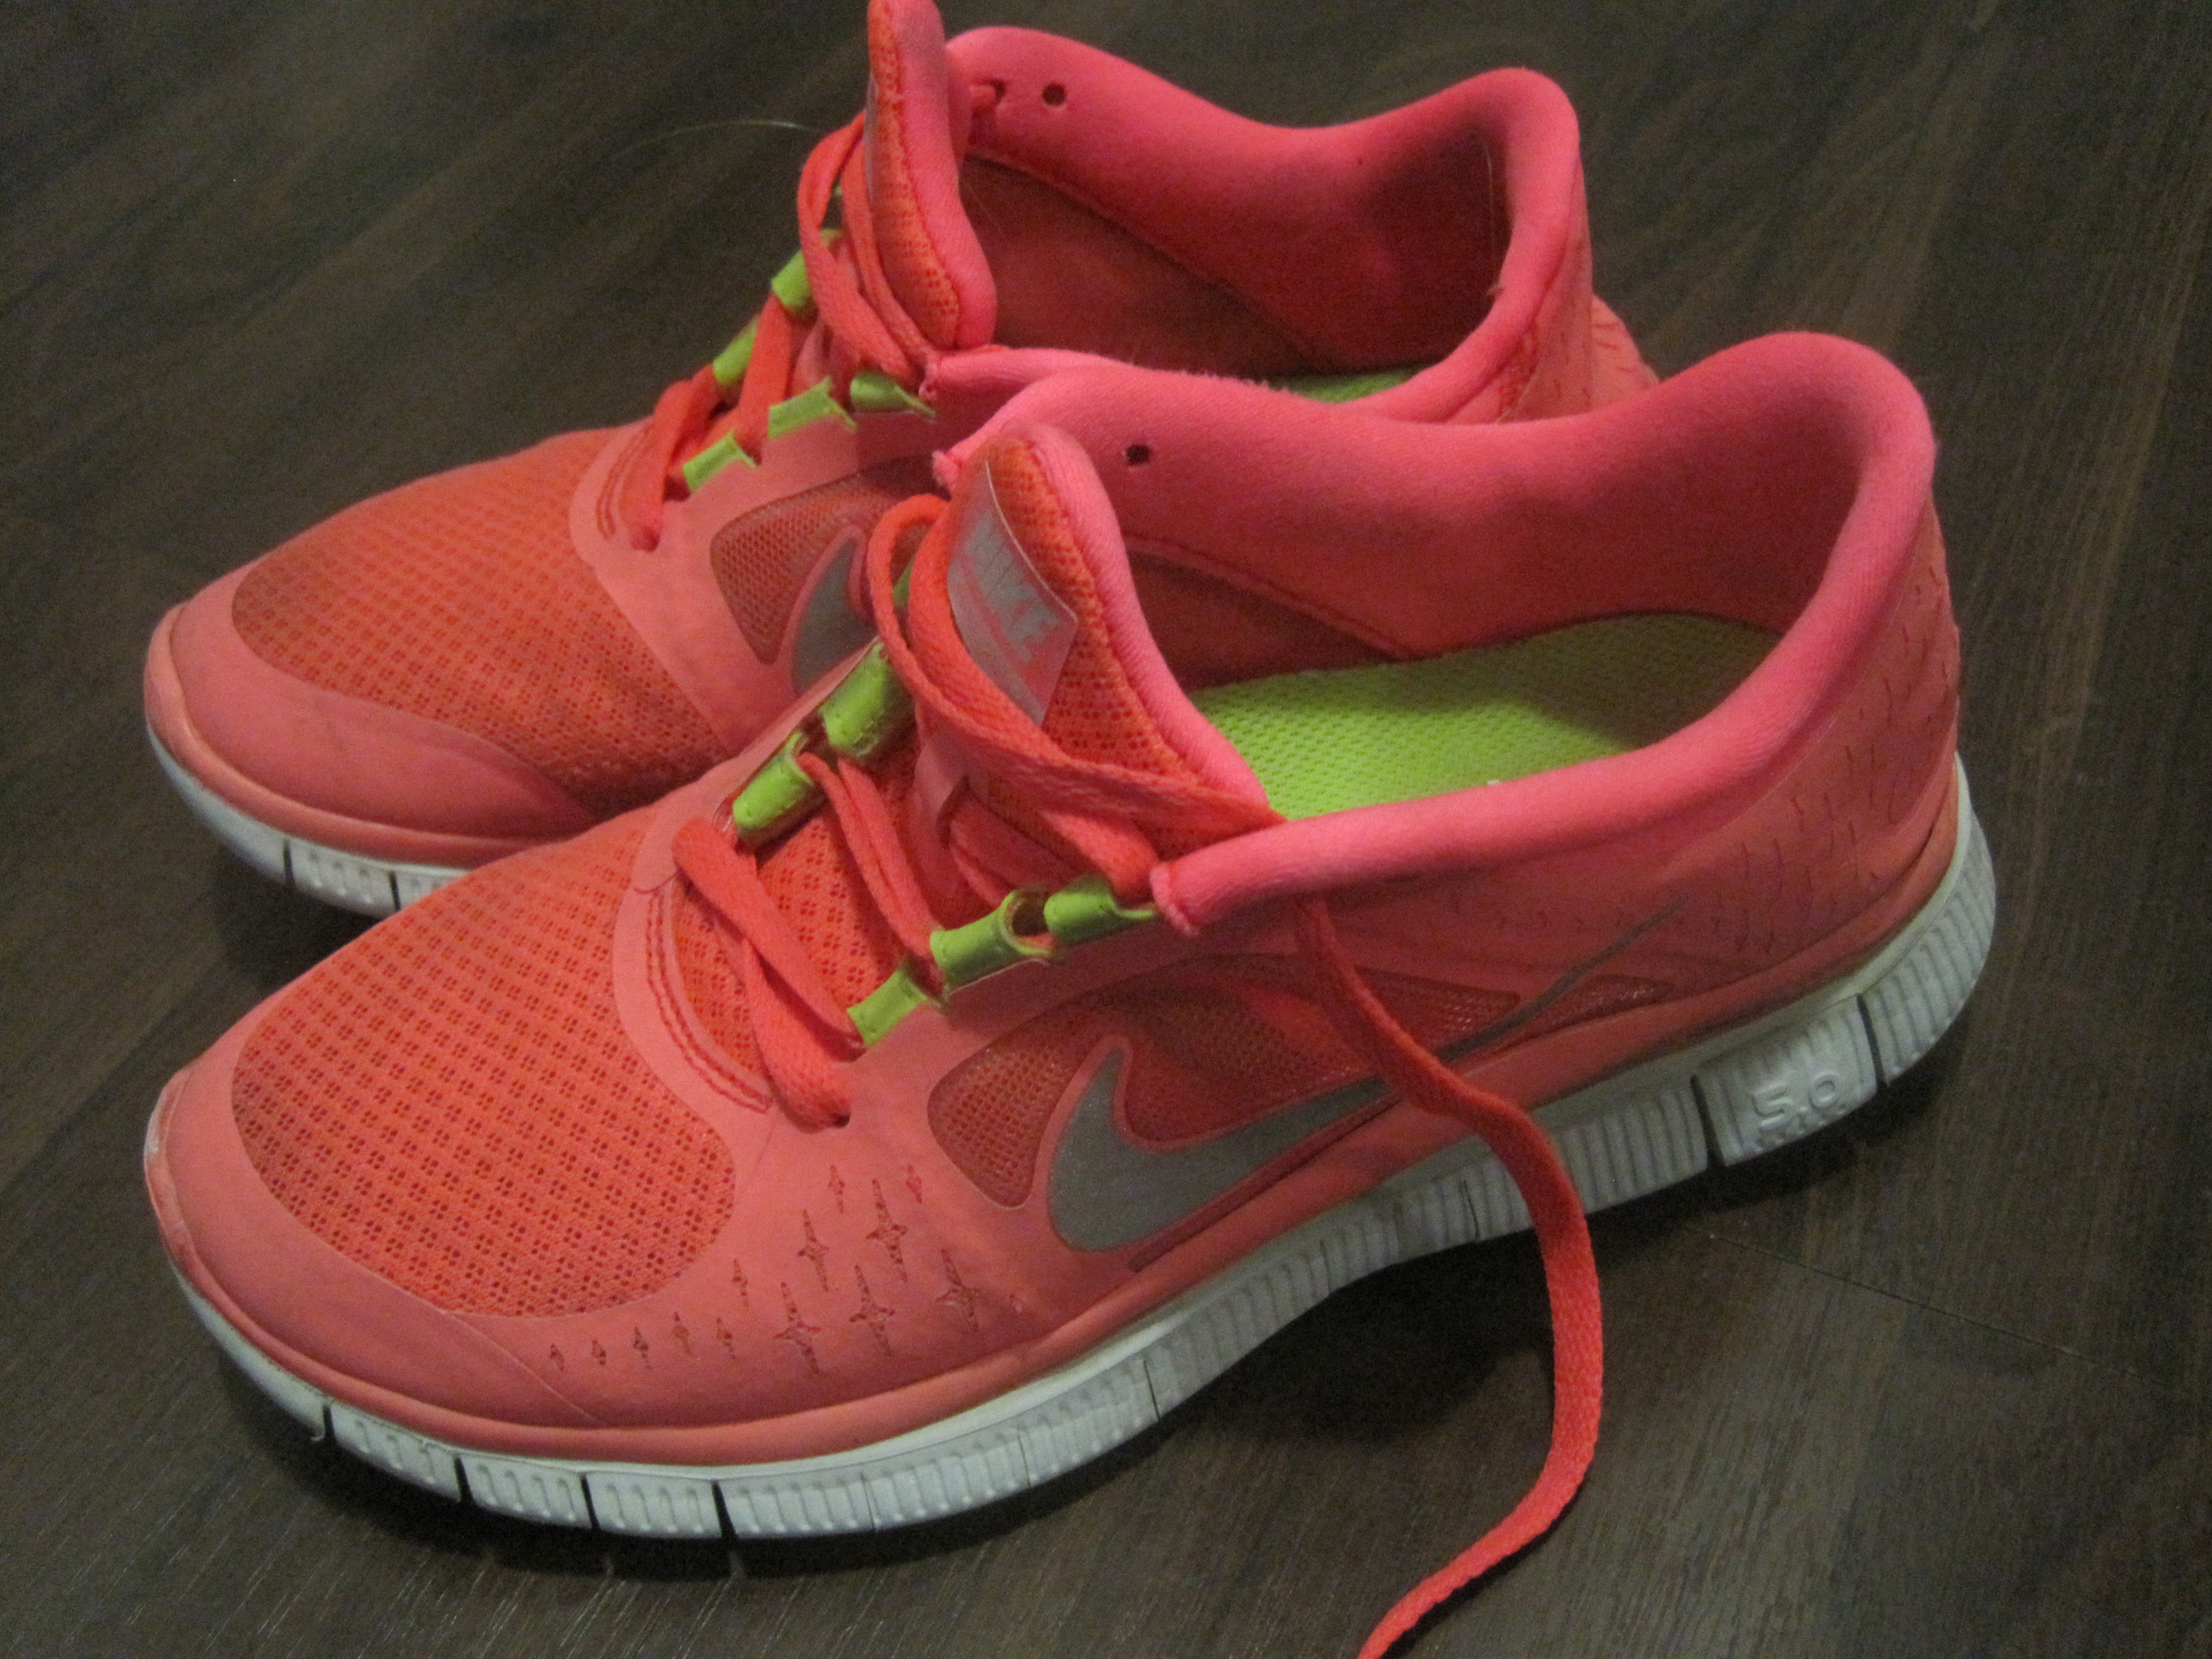 How to wash your running shoes